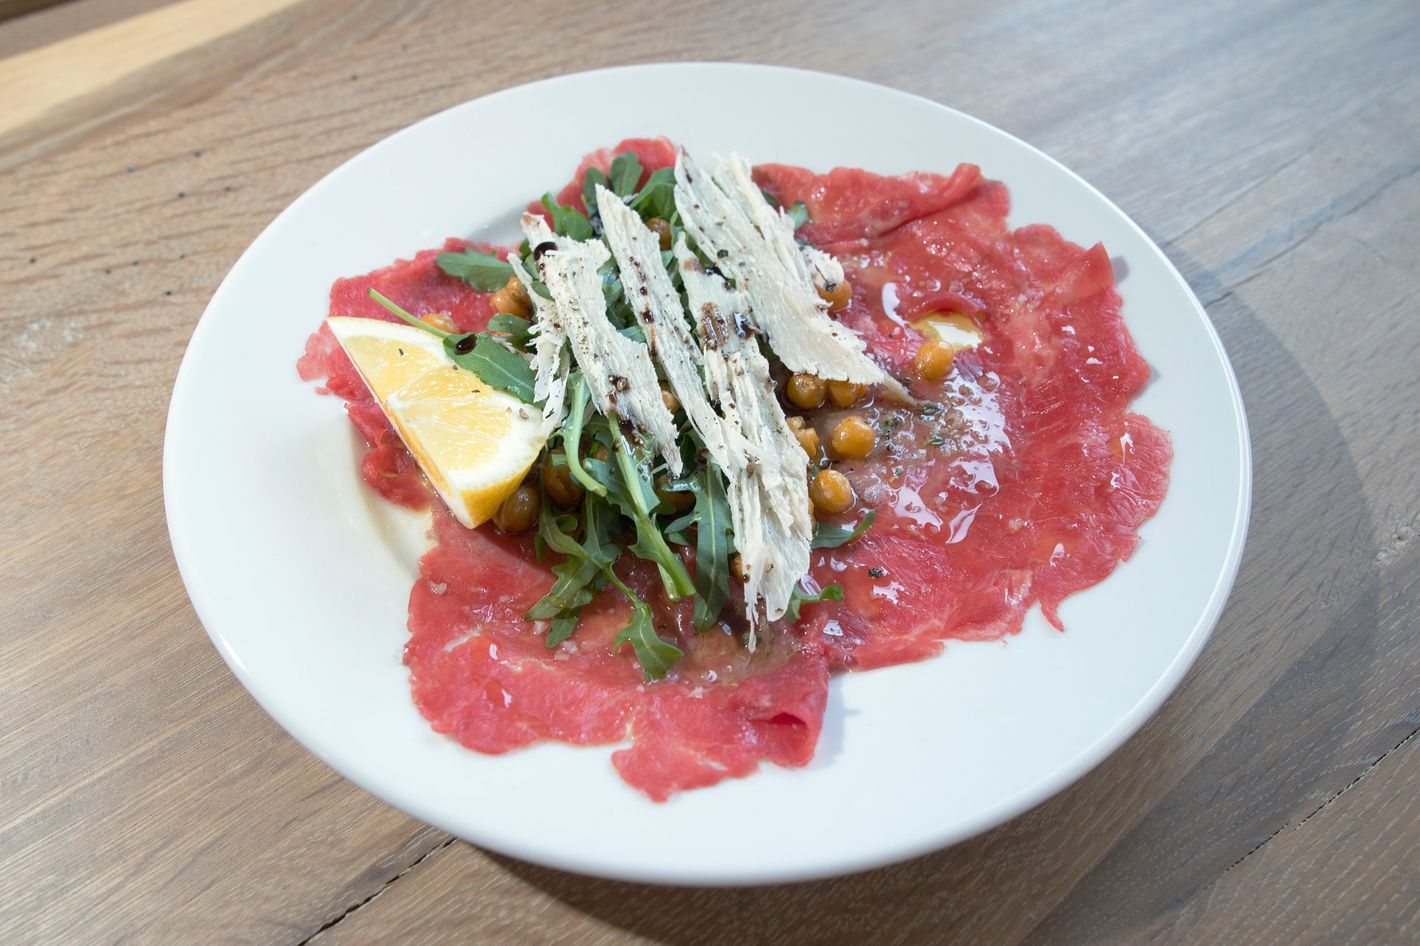 Carpaccio with fried chickpeas, arugula, and aged balsamic.